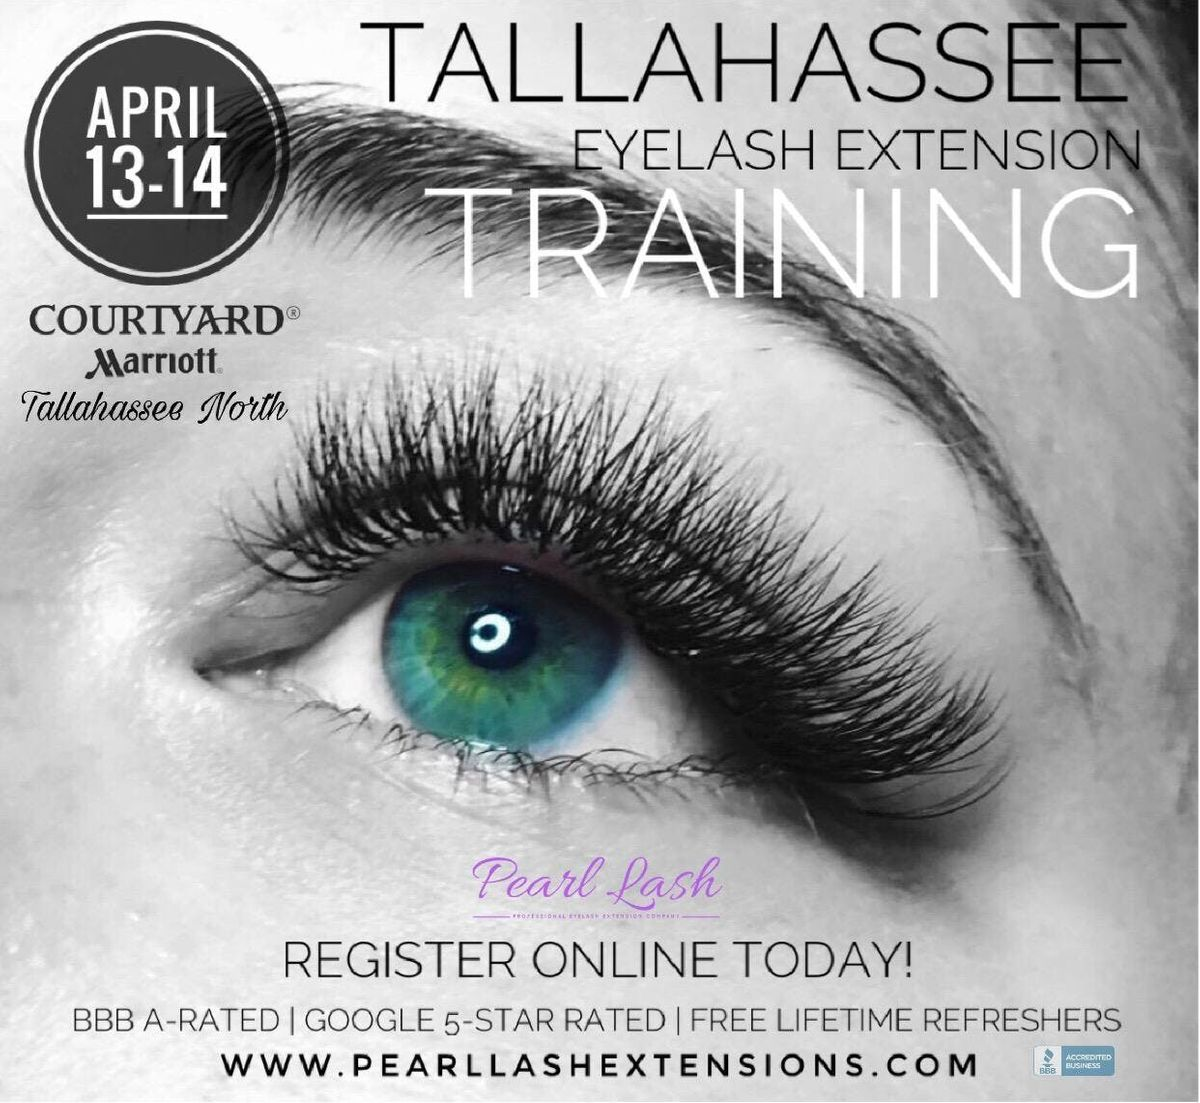 Eyelash Extension Training Hosted by Pearl Lash Tallahassee FL